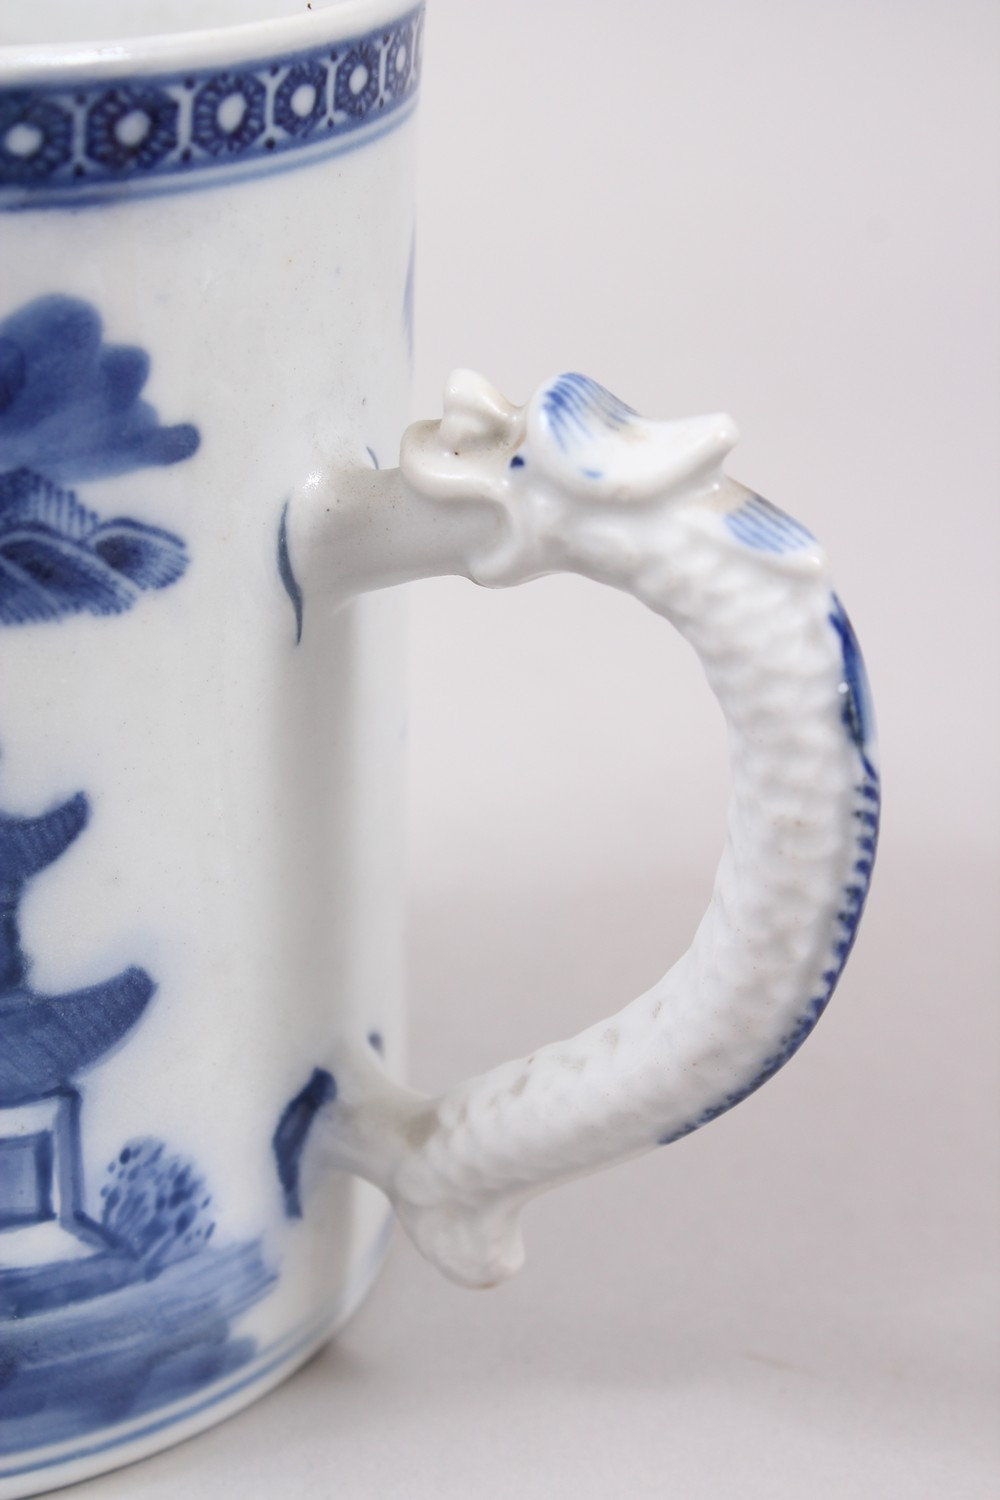 Lot 607 - AN 18TH / 19TH CENTURY CHINESE BLUE & WHITE PORCELAIN MUG, decorated with scenes of landscapes, with